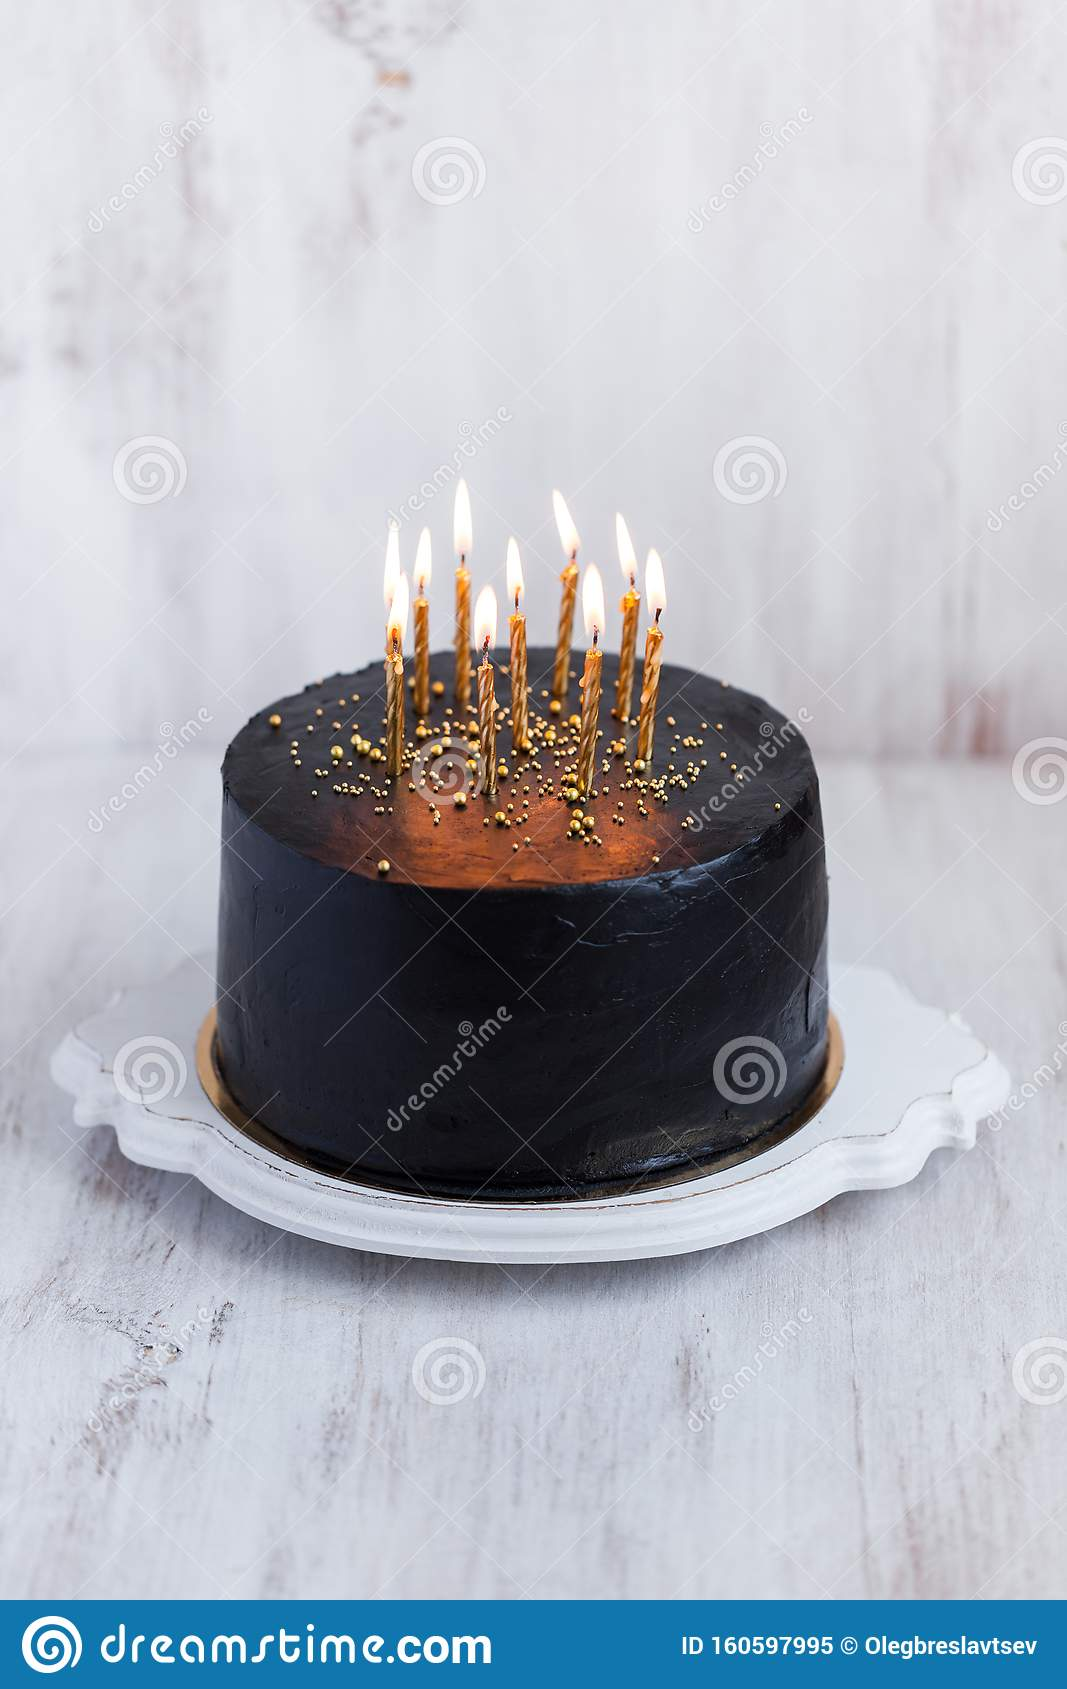 Stupendous Black Round Birthday Cake With Burning Golden Candles Close Up Funny Birthday Cards Online Barepcheapnameinfo